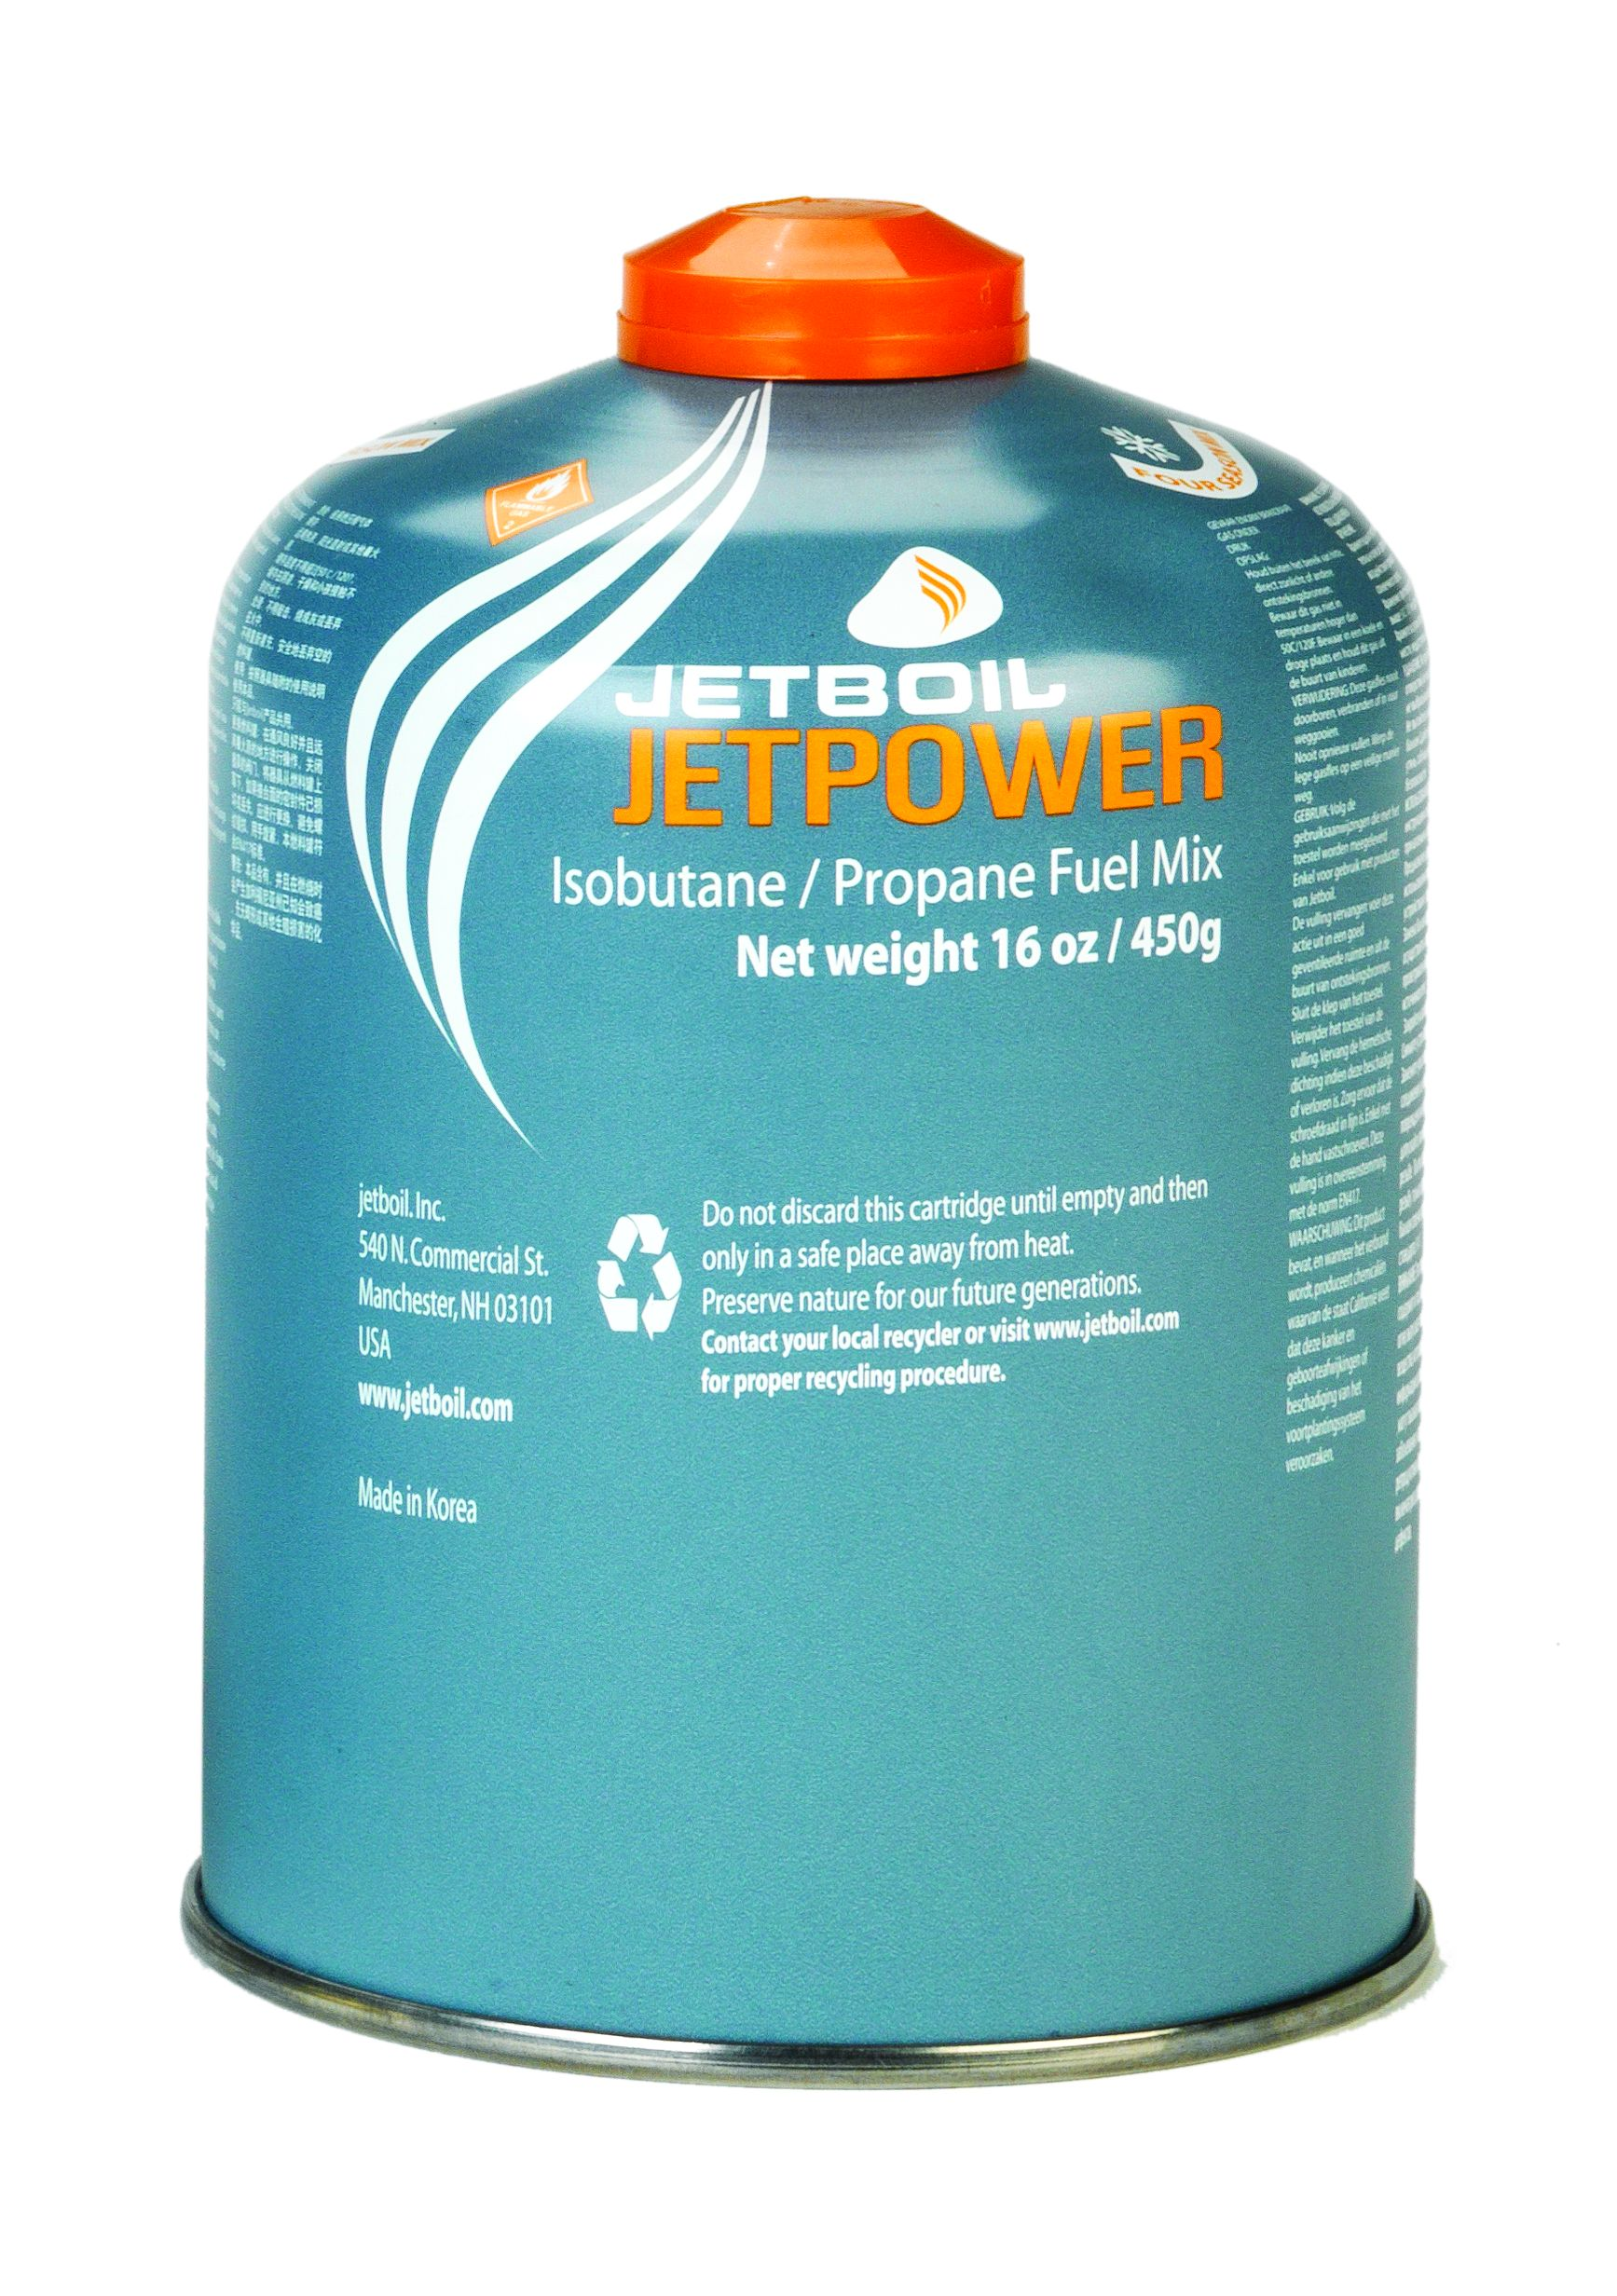 Jetboil Jetpower 450g cartridge Image